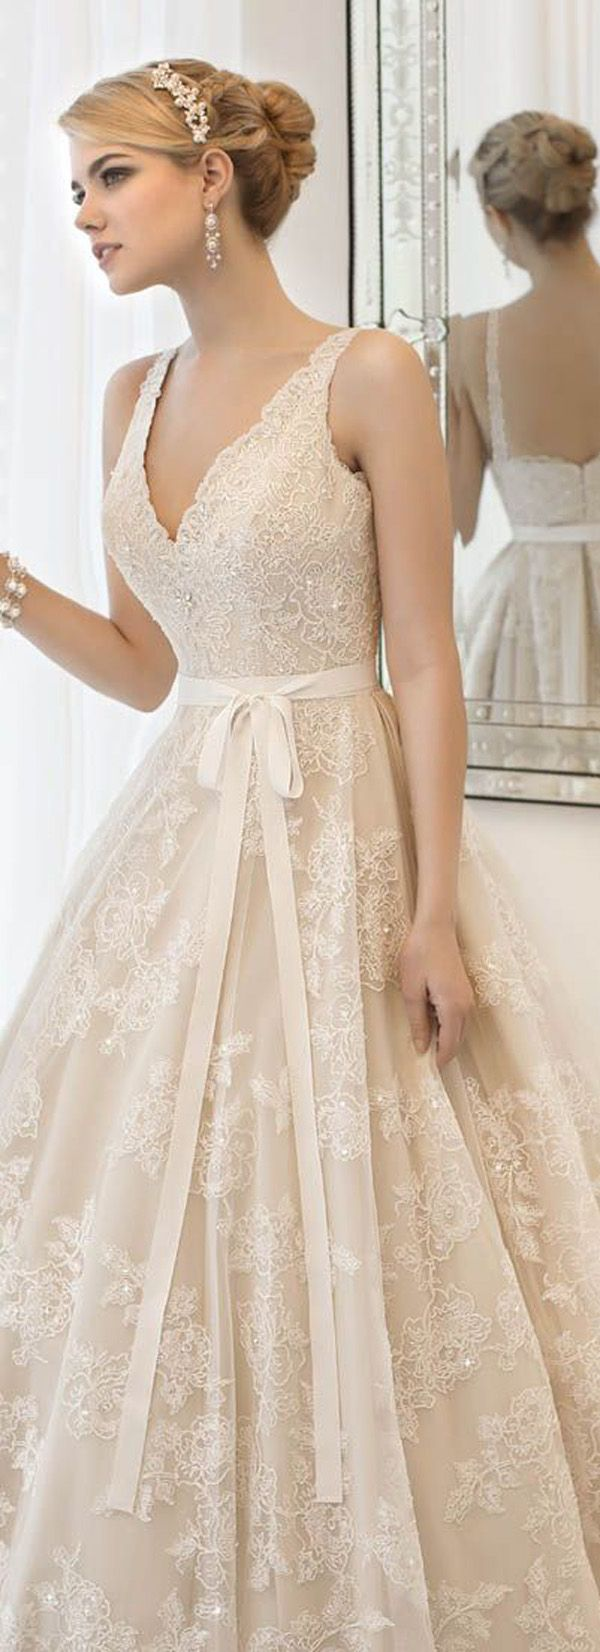 Trending Best White lace wedding dress ideas on Pinterest Lace wedding dress Wedding dresses with lace and Wedding dress styles